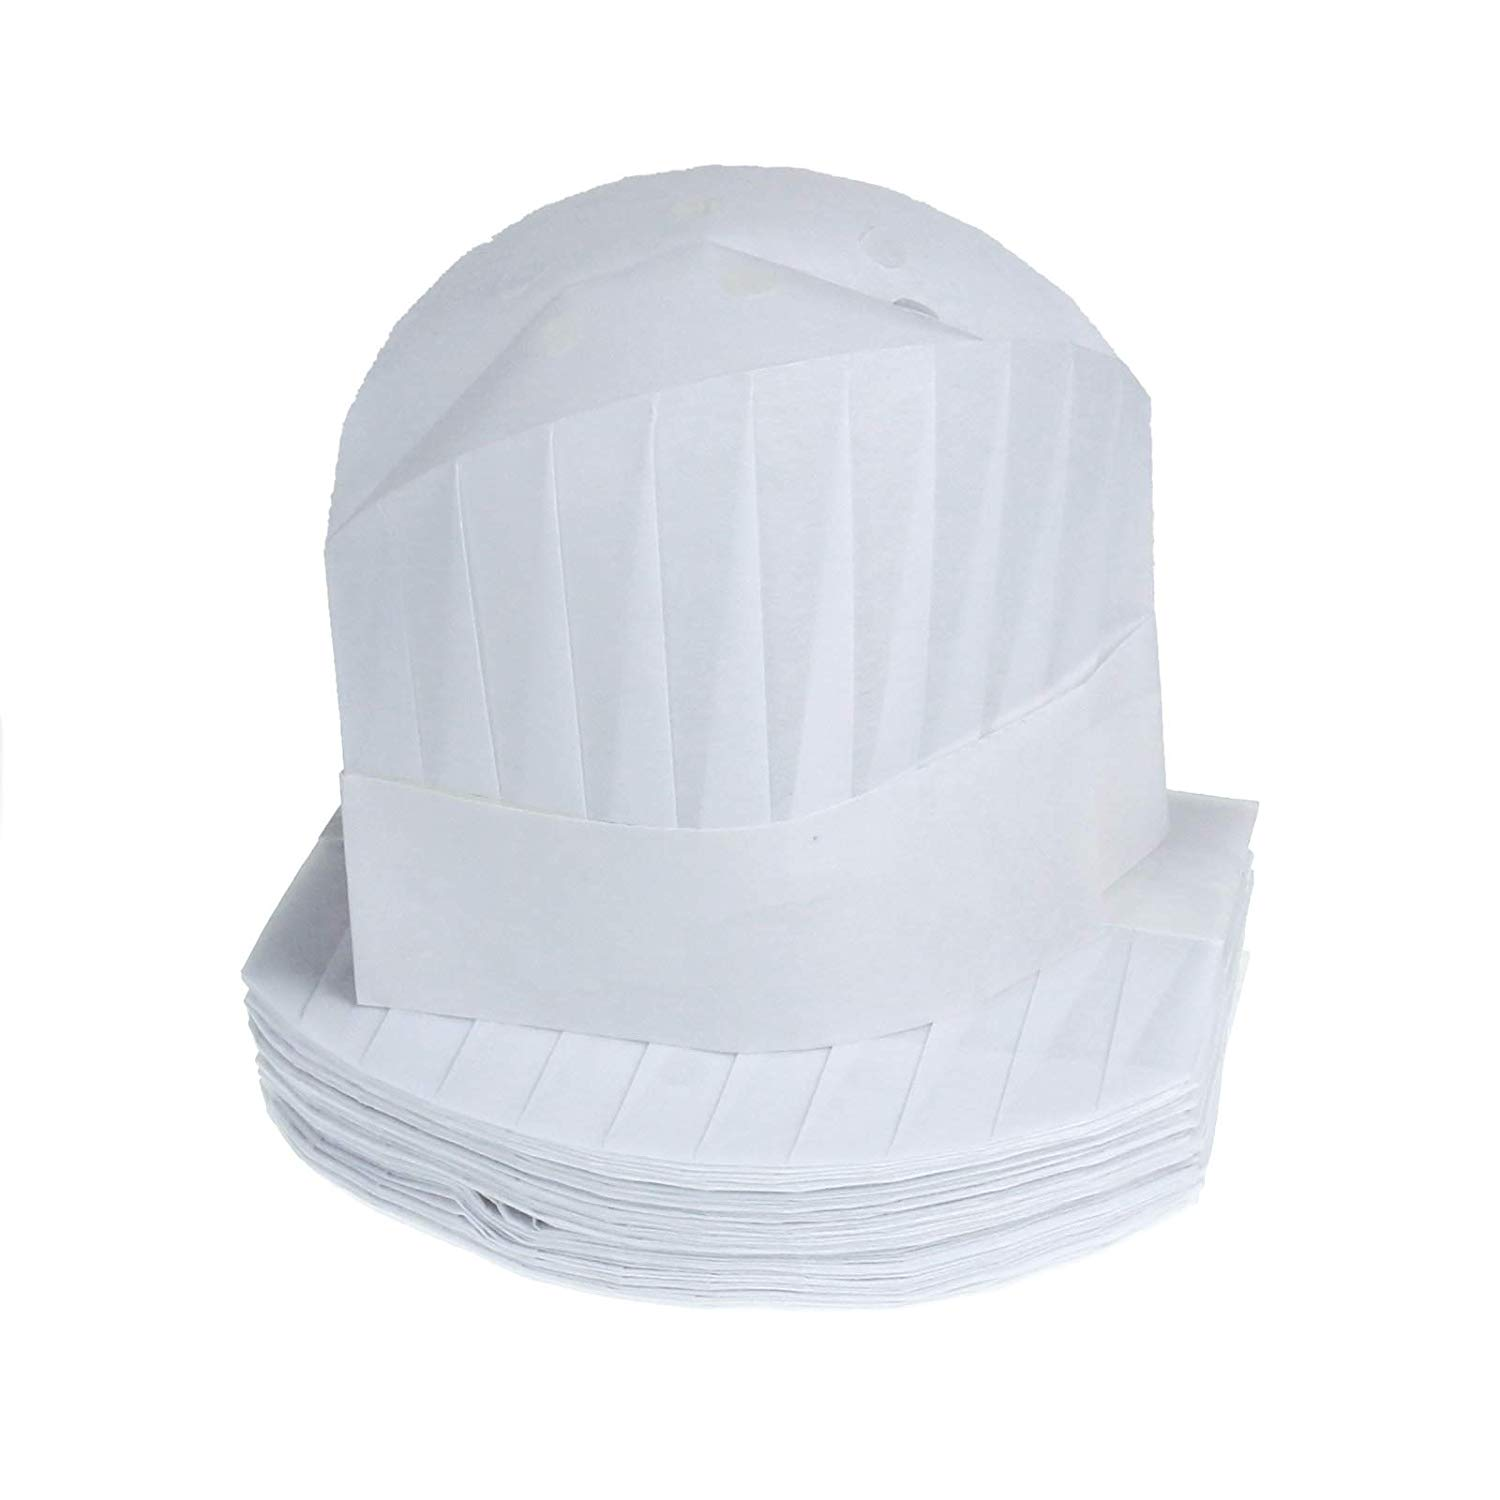 f9e67c52d Cheap Customized Chef Hats, find Customized Chef Hats deals on line ...